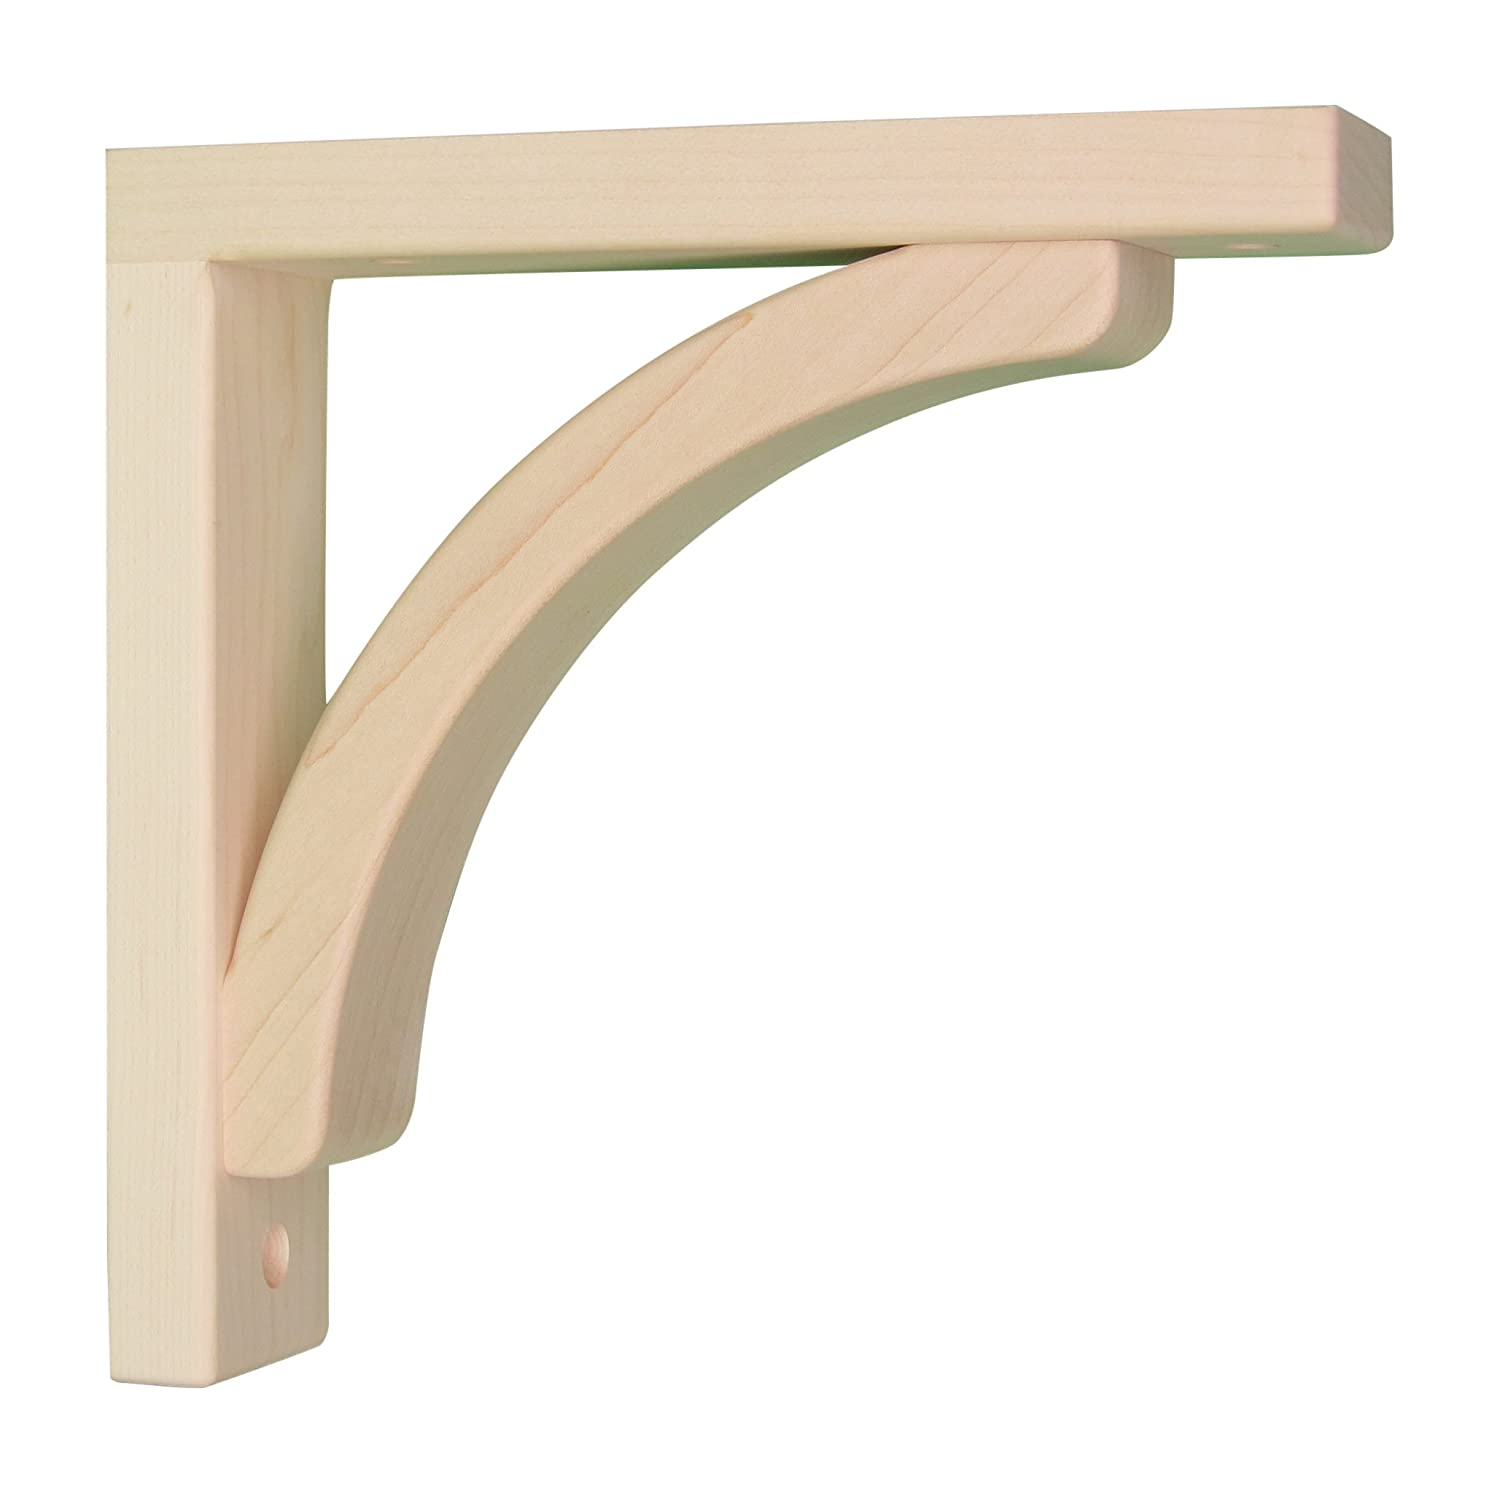 Maple Cove 8 Corbels for Pre-Installed Countertops